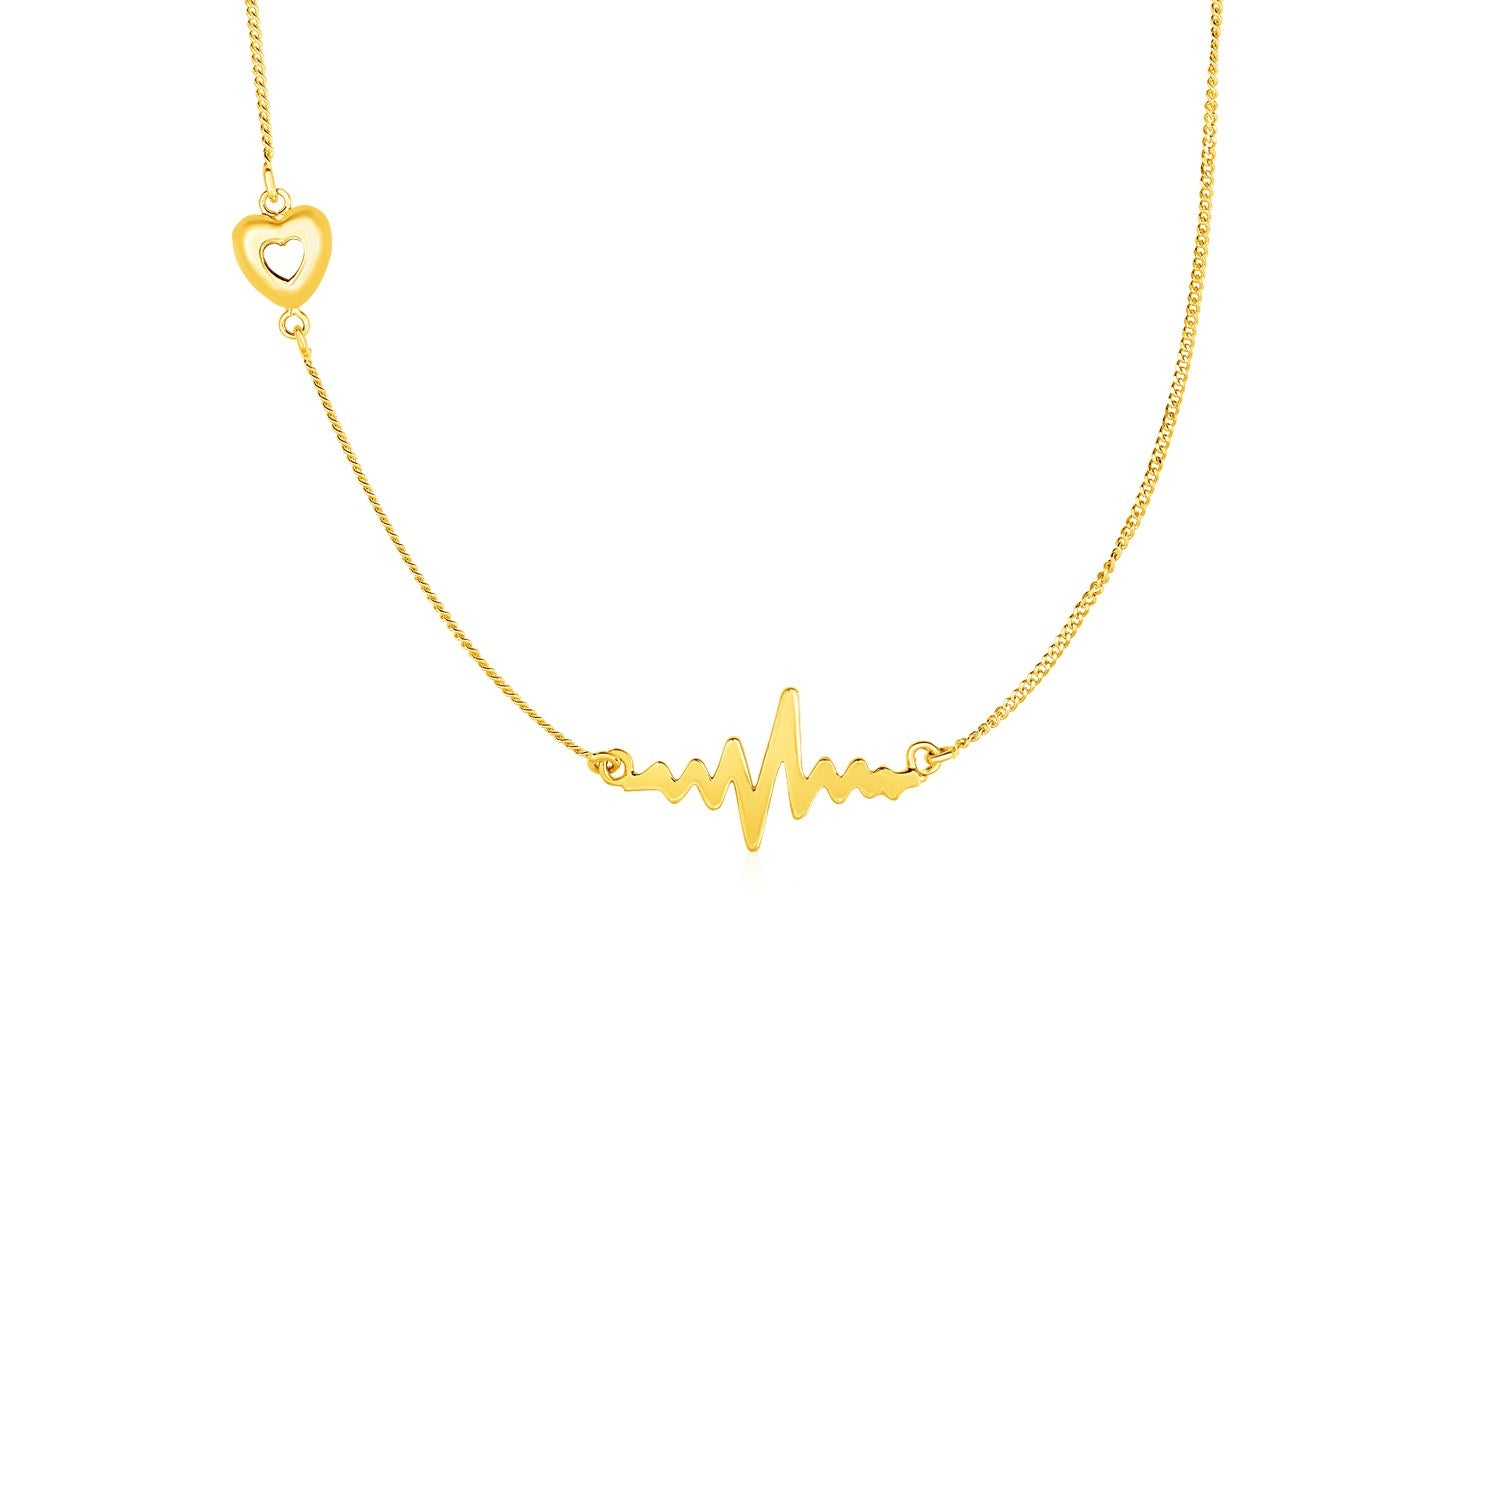 Necklace with Heart and Wave in 14K Yellow Gold